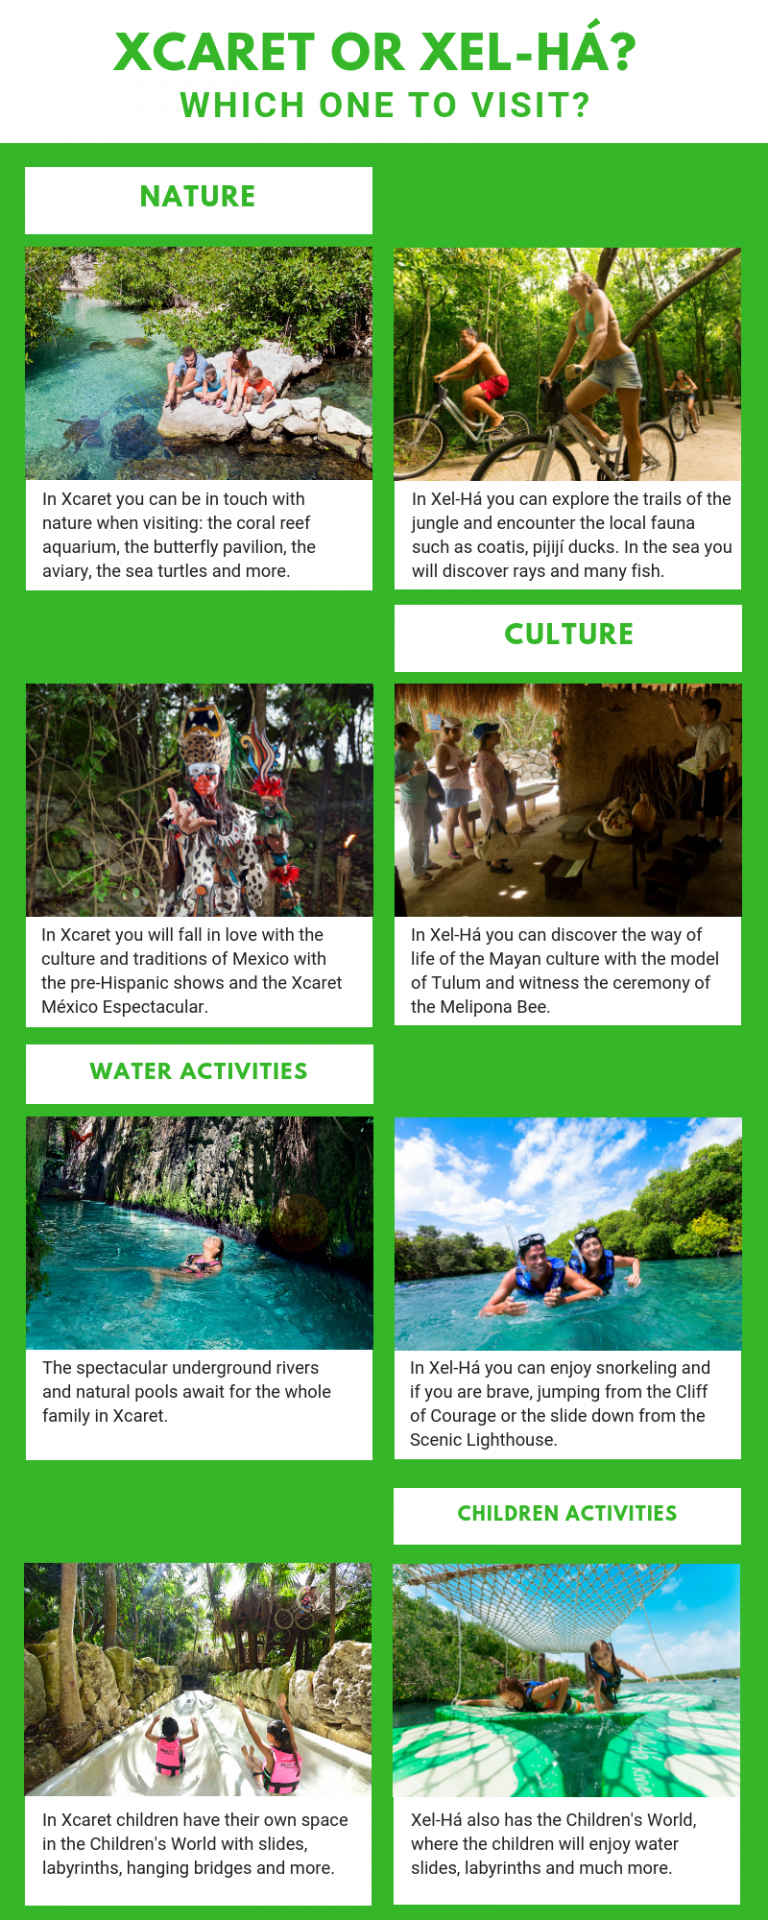 xelha-or-xcaret-which-one-to-visit